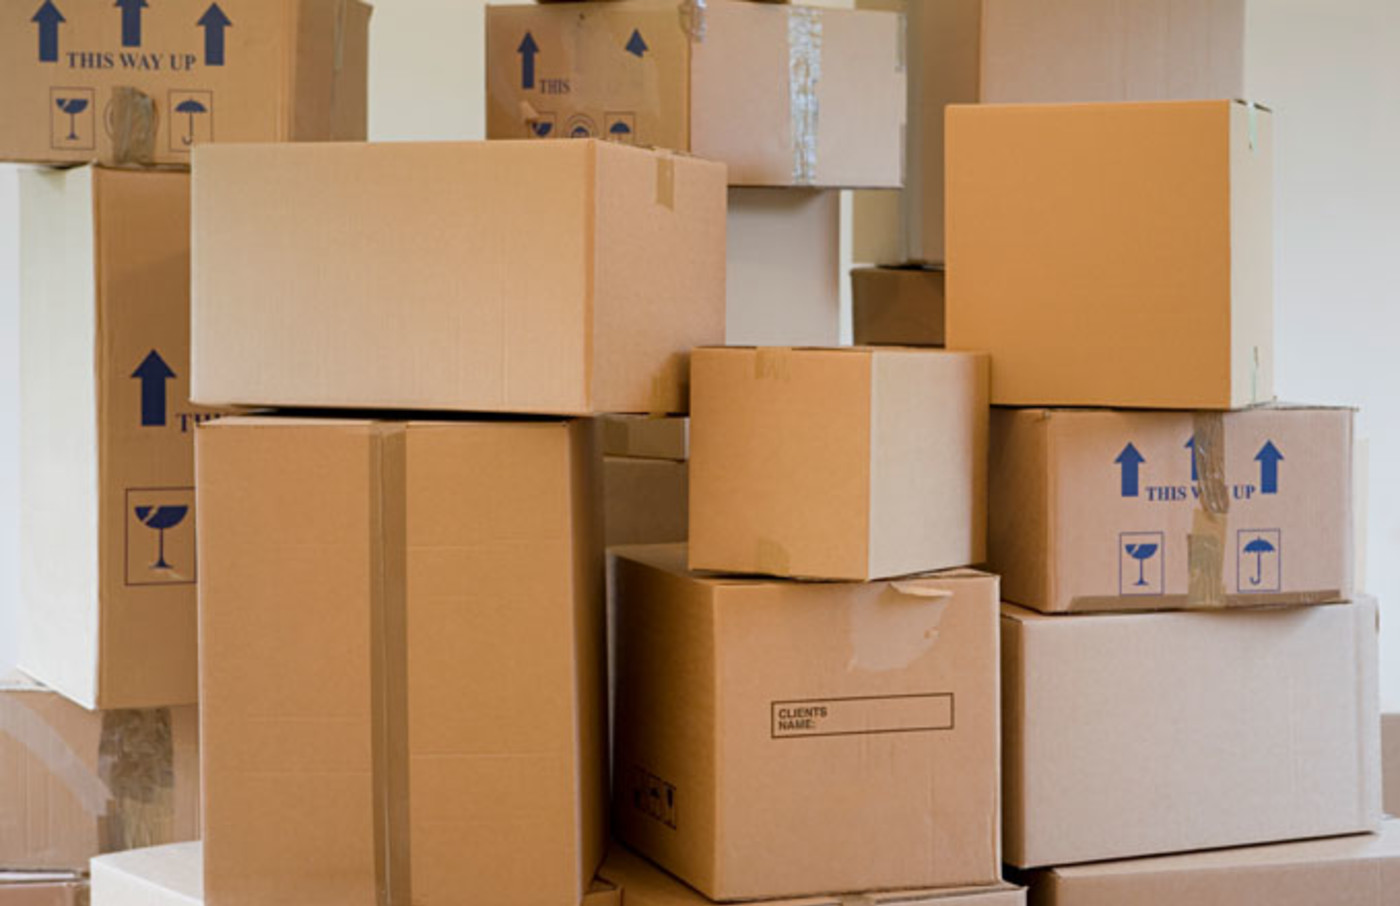 A stock image of moving boxes.